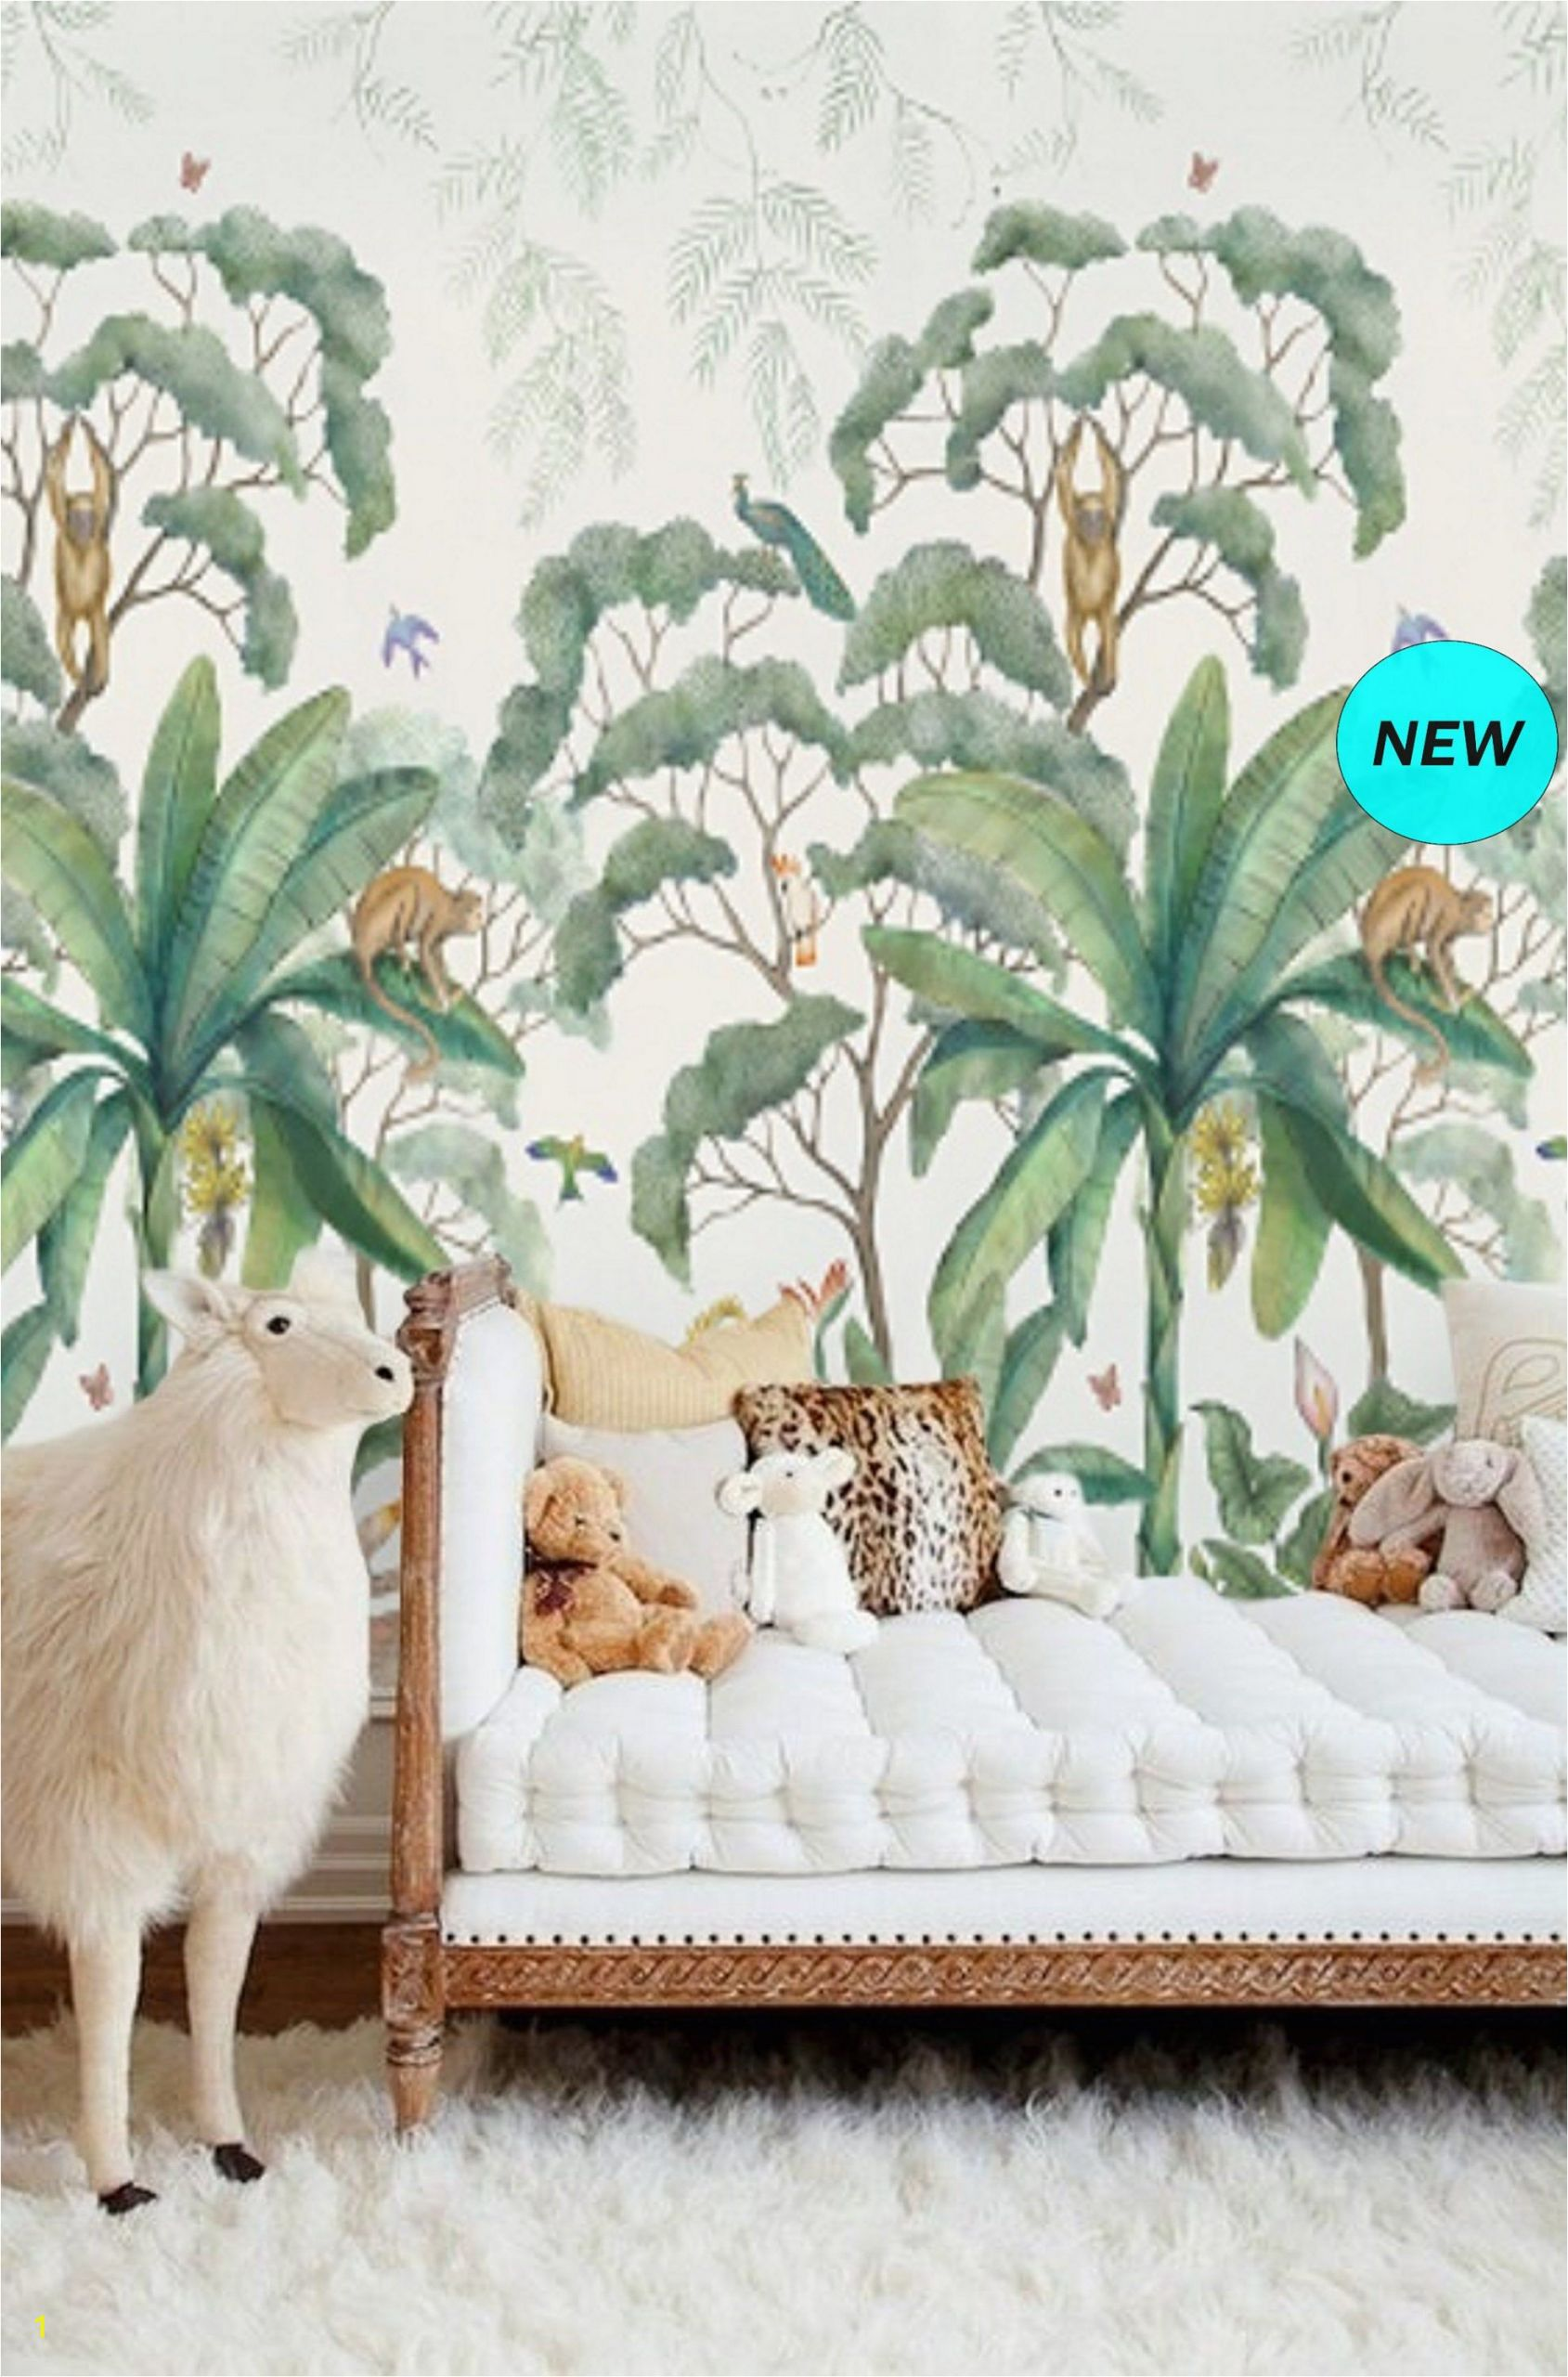 How to Remove A Wall Mural Jungle Wall Mural Wallpaper Removable Peel & Stick Wallpaper